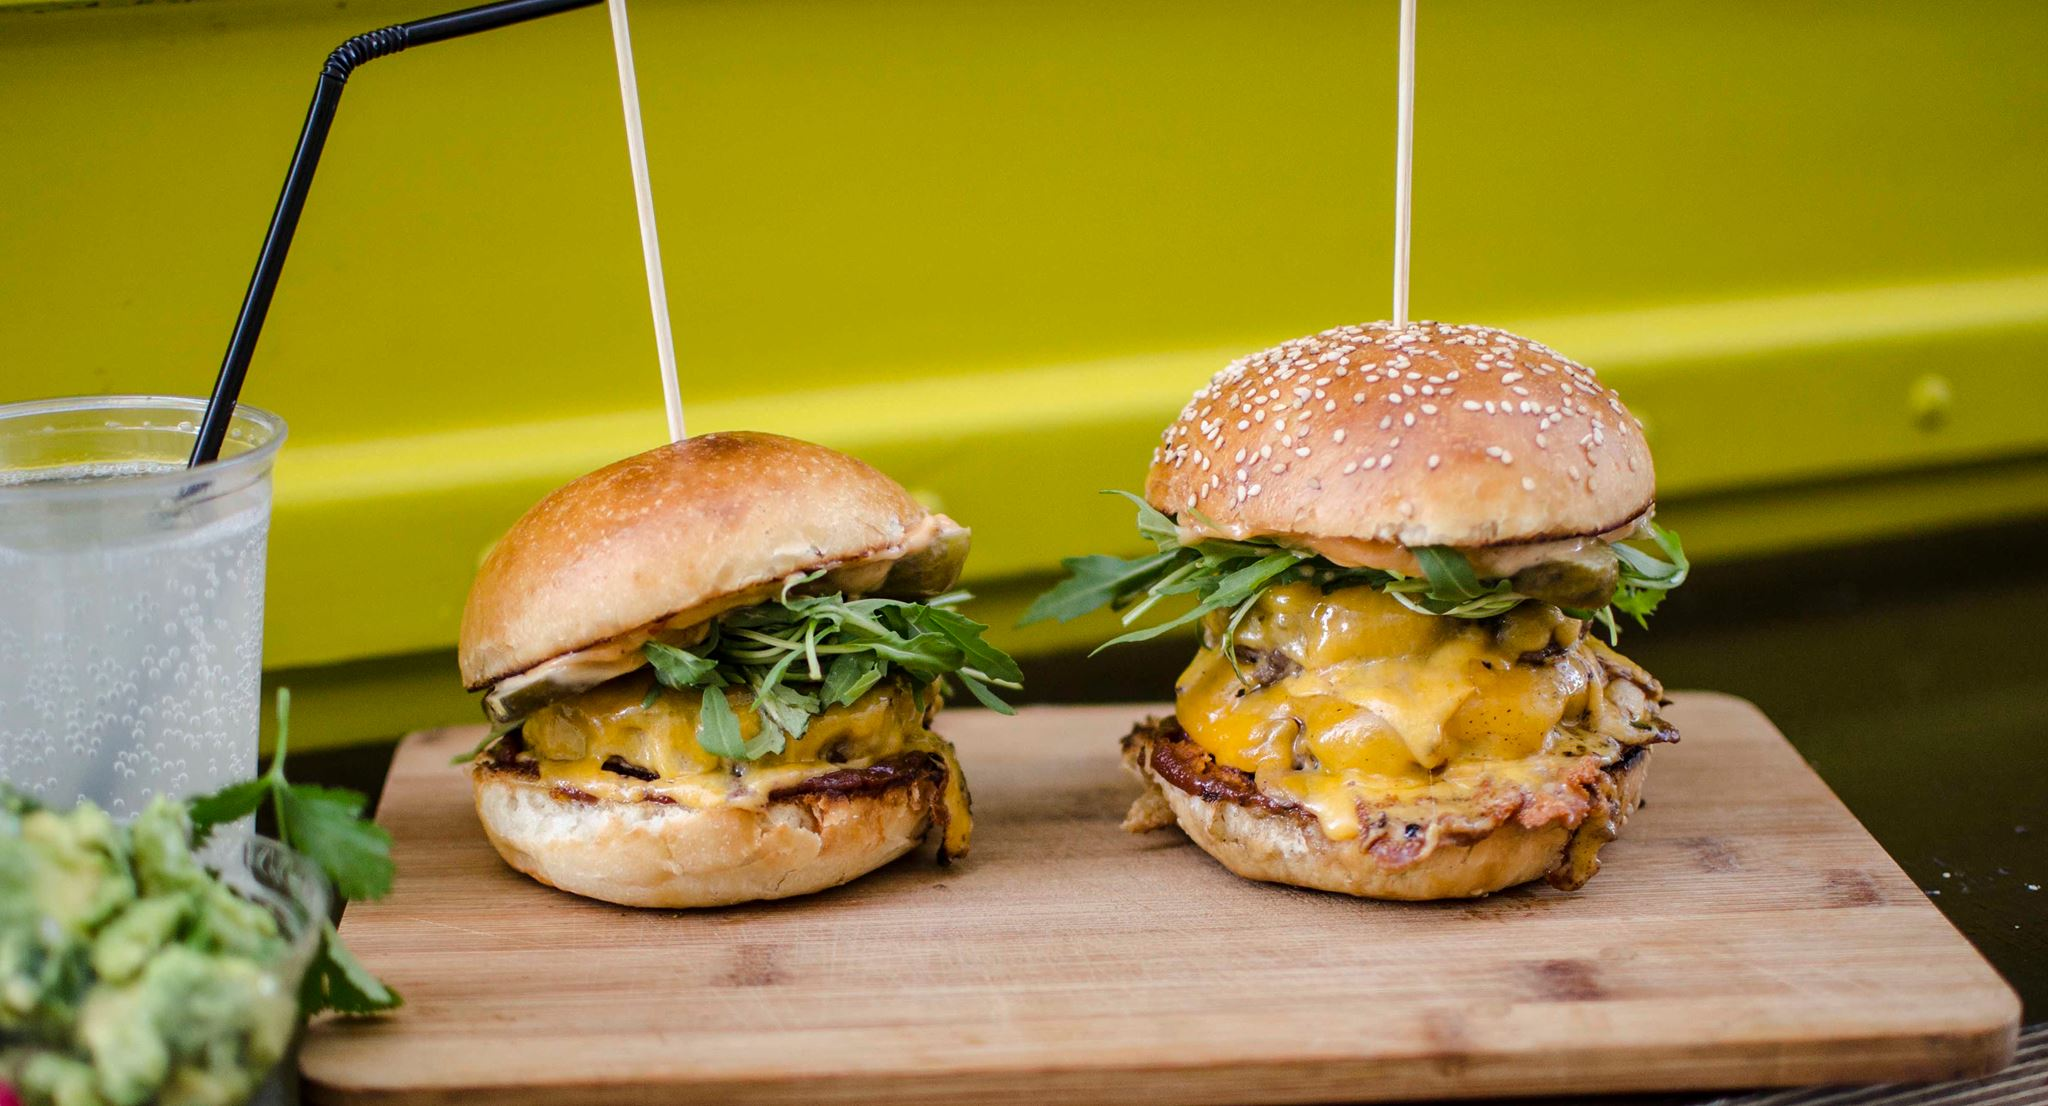 Street food in Berlin is a great option for budget travel: try burgers from Bunsmobile!